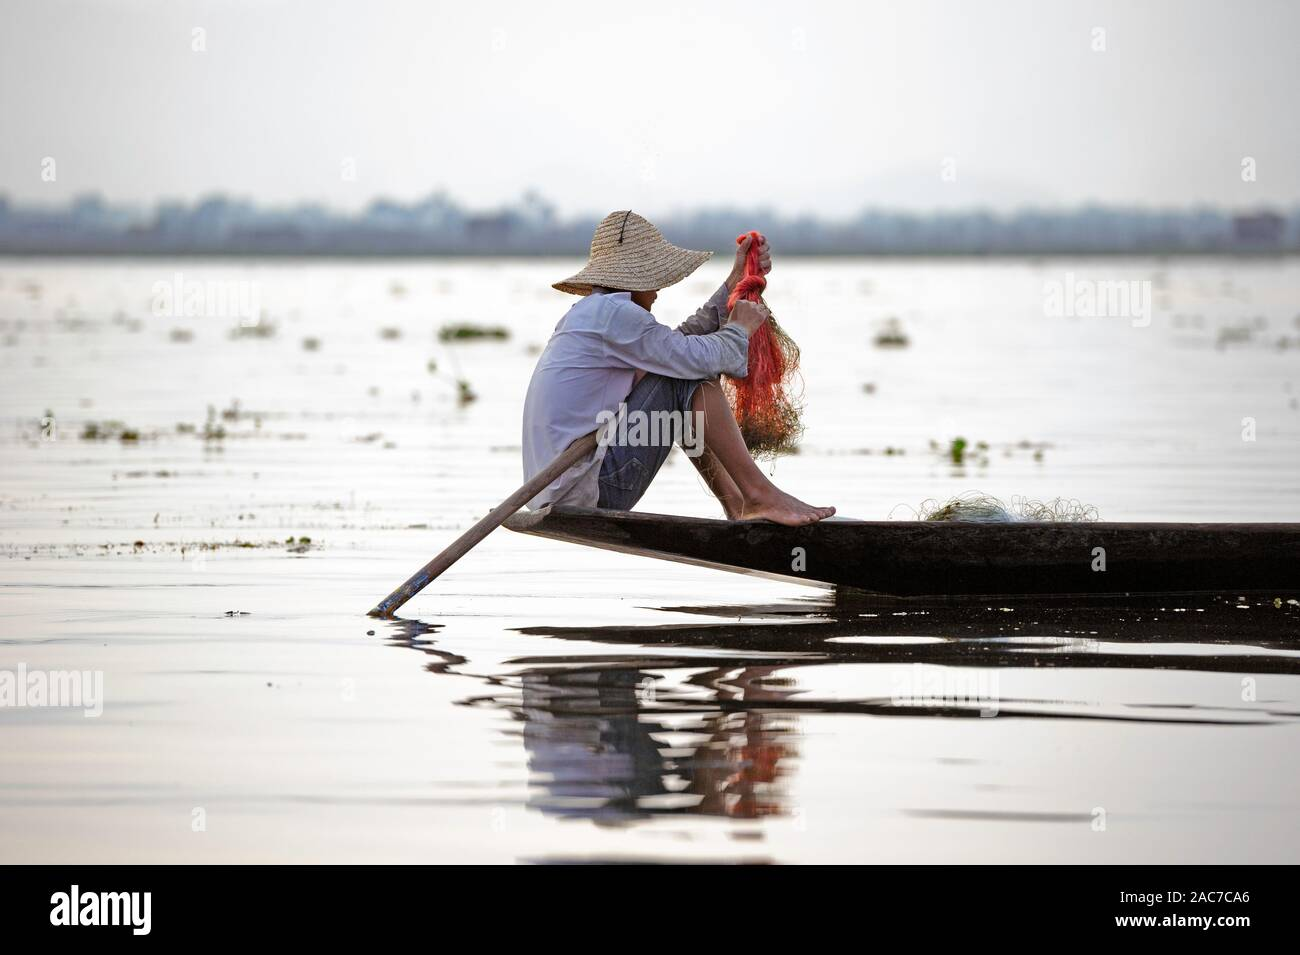 person-preparing-a-net-for-fishing-on-inle-lake-myanmar-burma-2AC7CA6.jpg